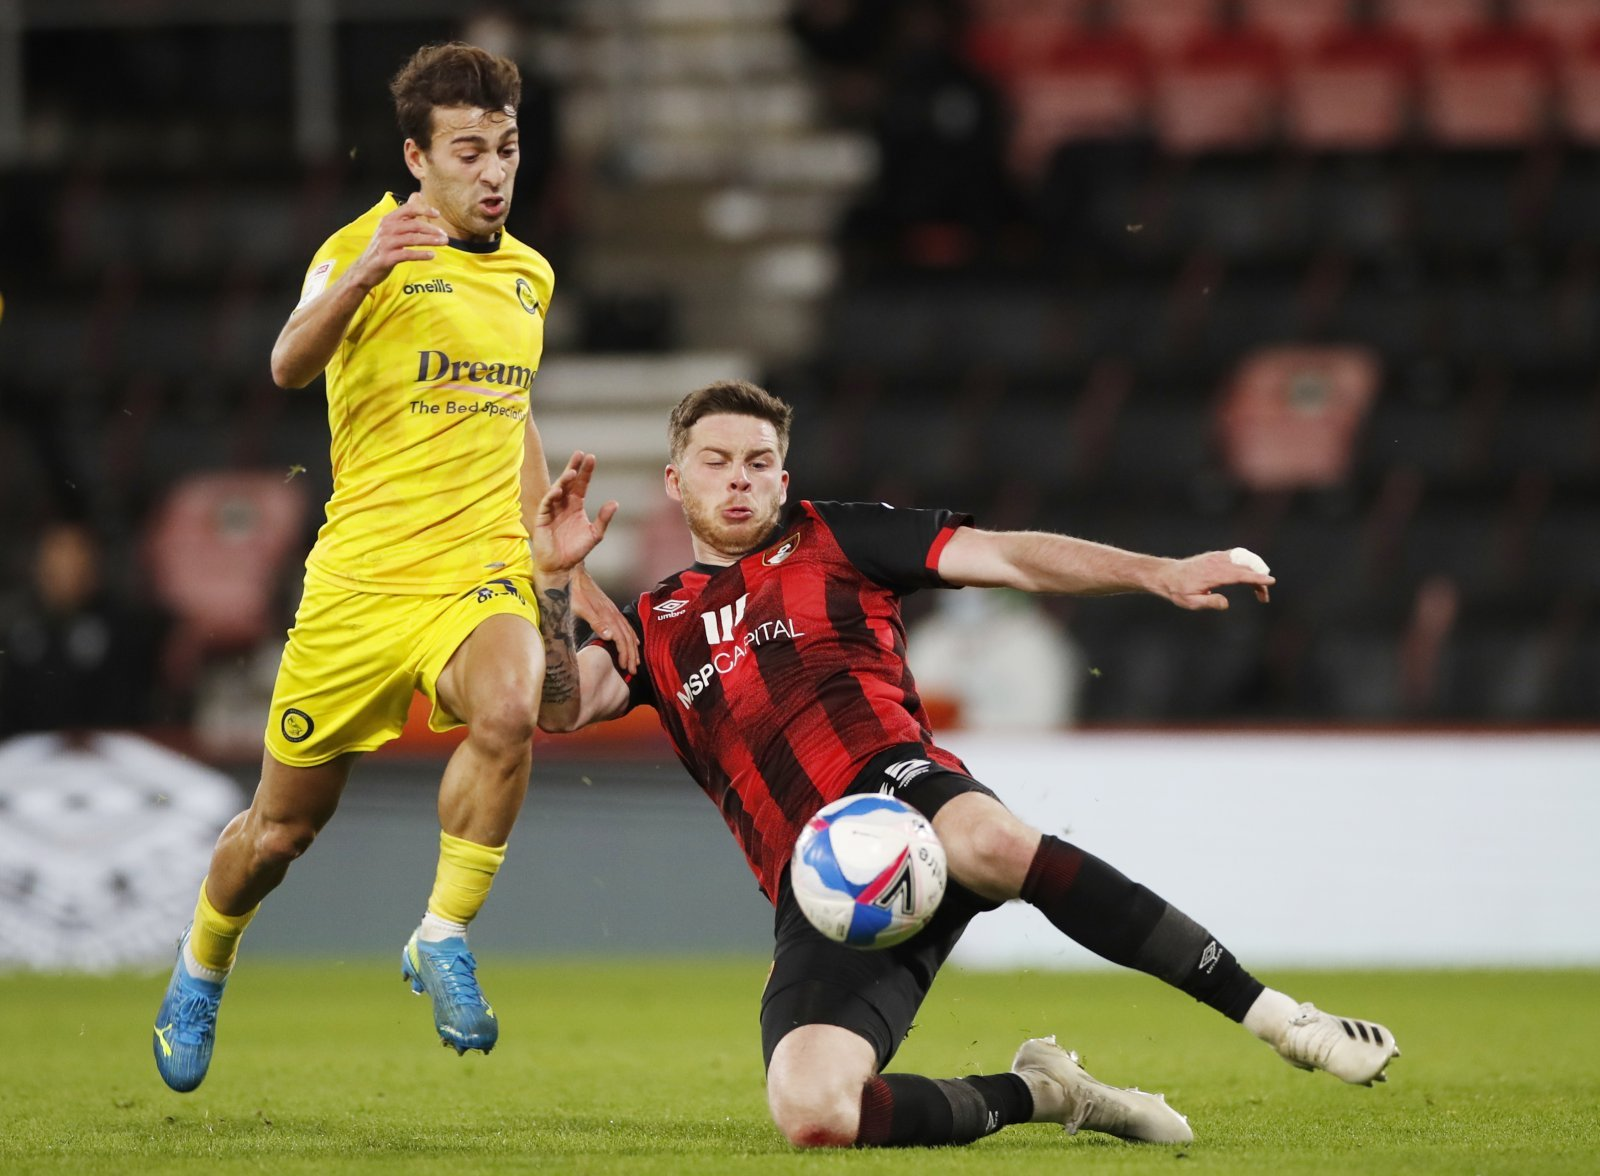 Jack-simpson-in-action-for-bournemouth